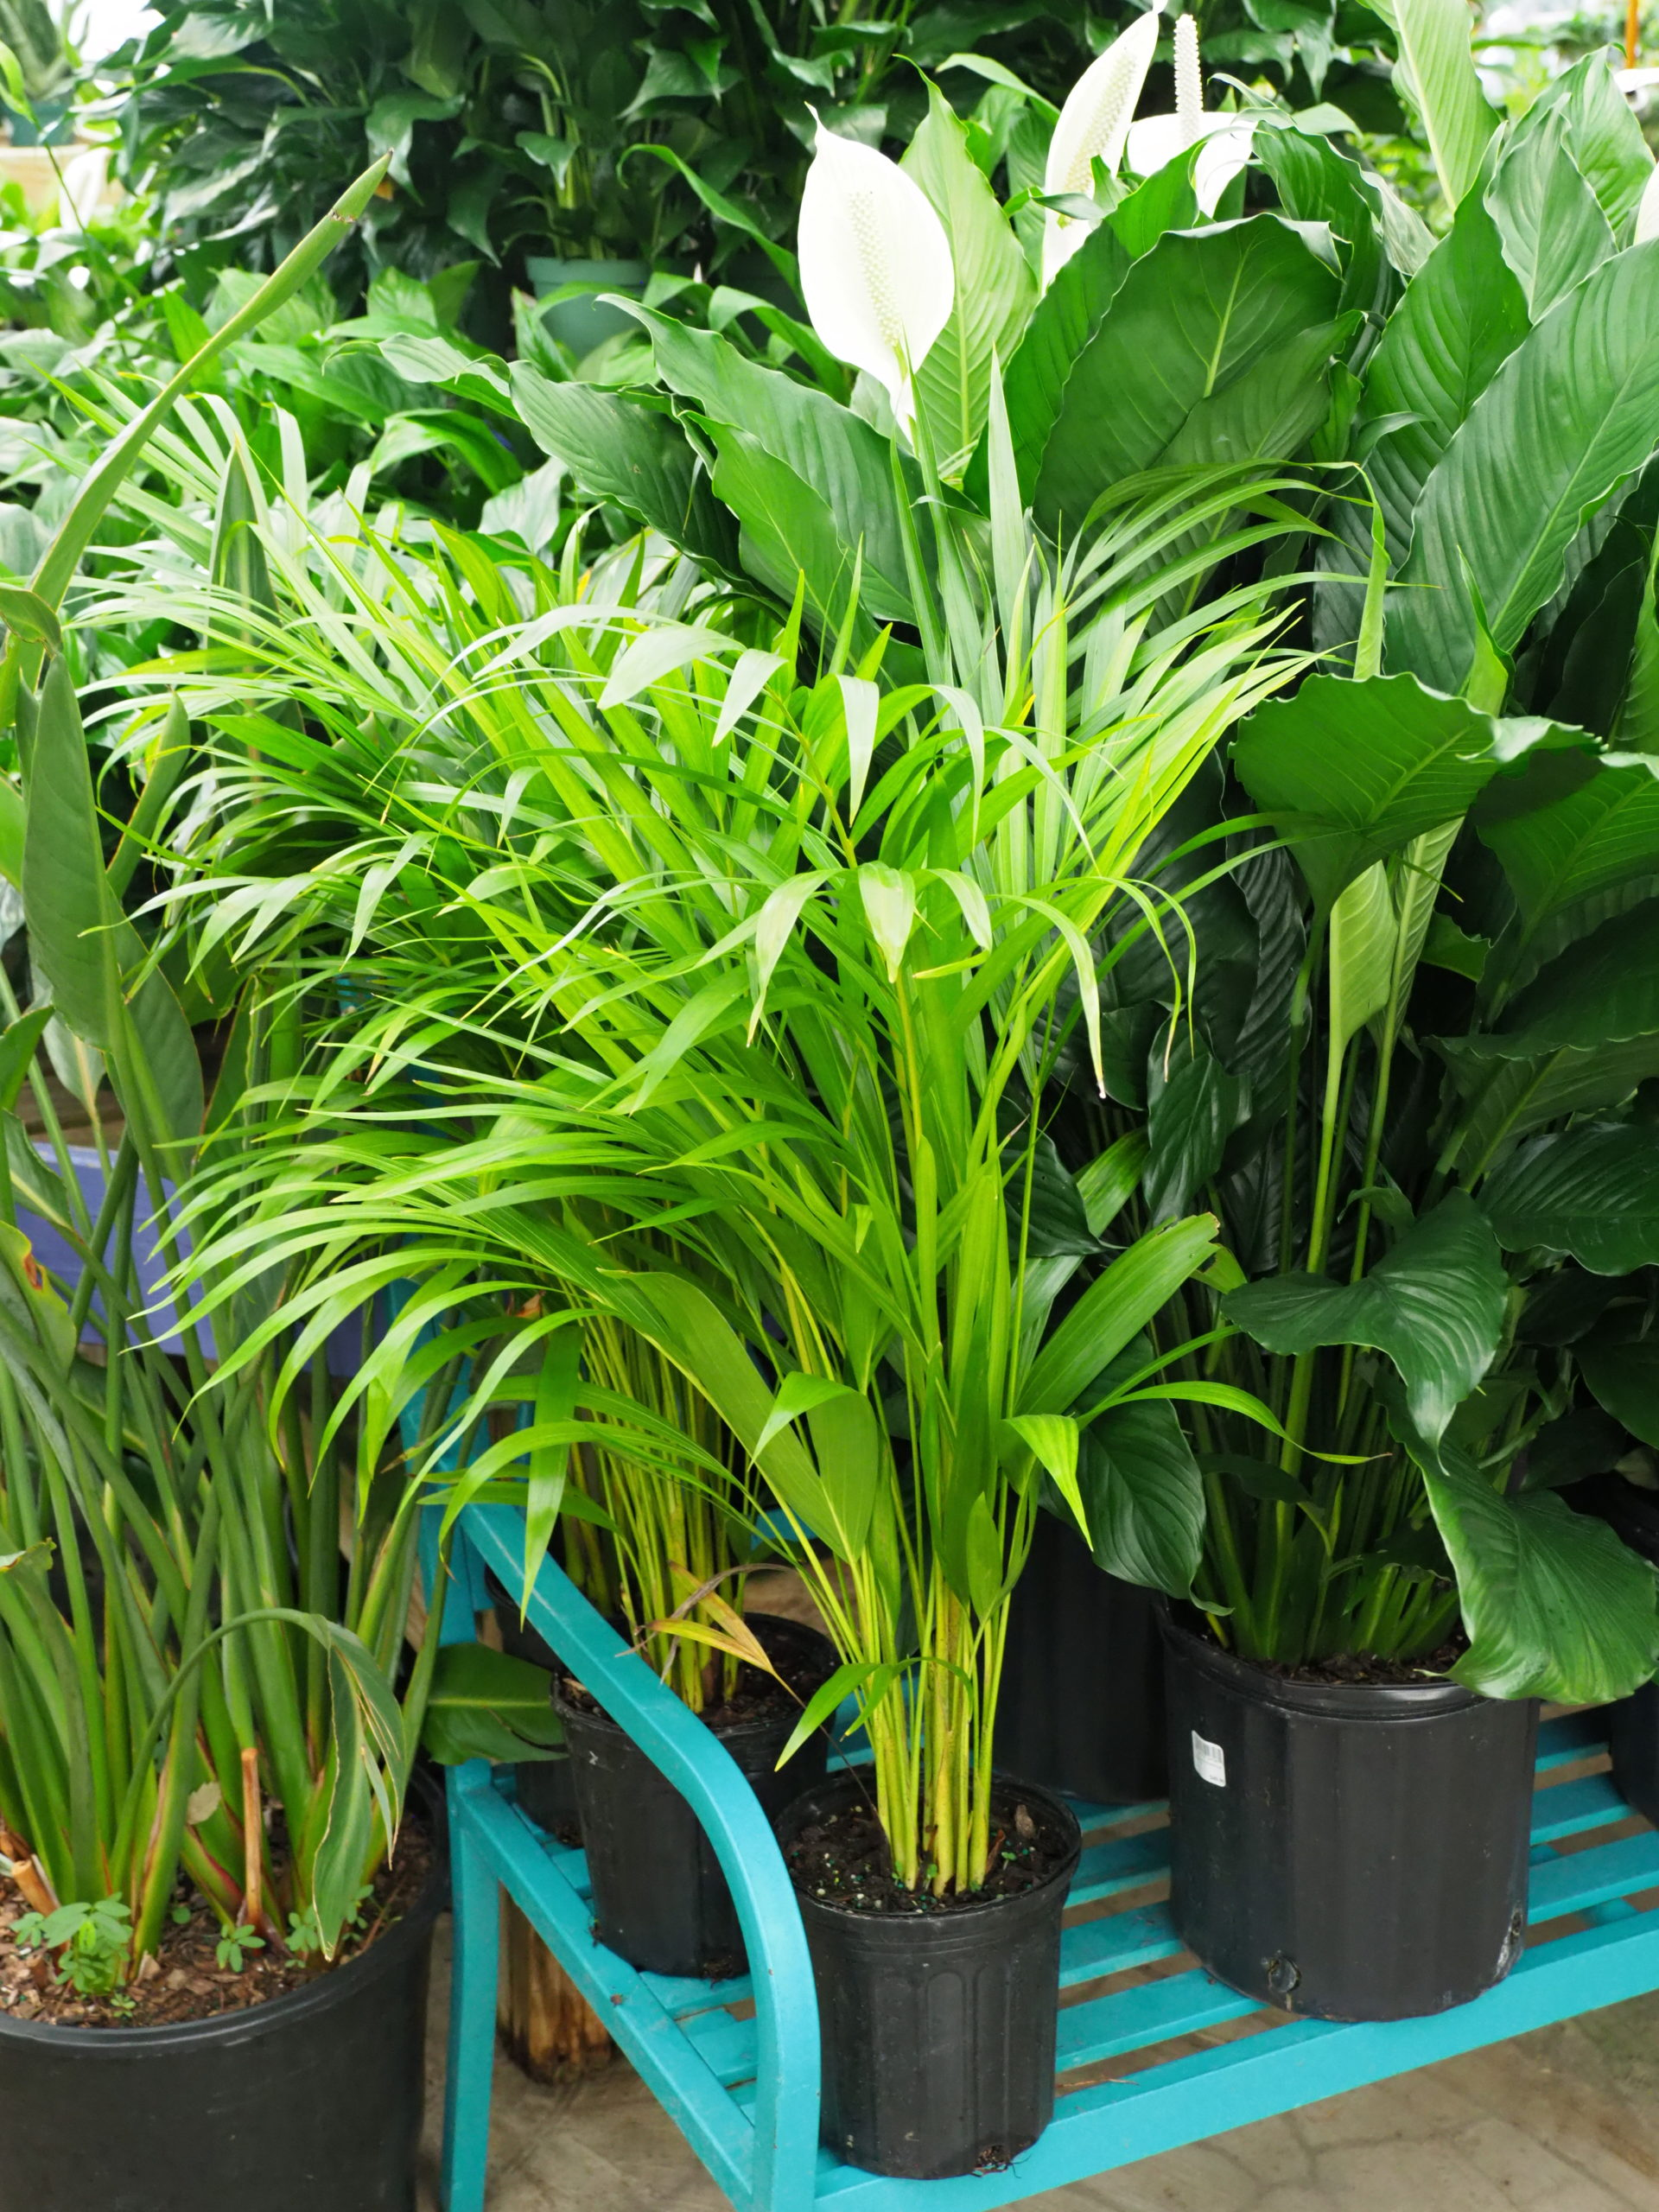 Palms were the classic houseplants of the 19th and 20th centuries. In most cases, they should be considered temporary or disposable, as they are prone to a number of insects and diseases.